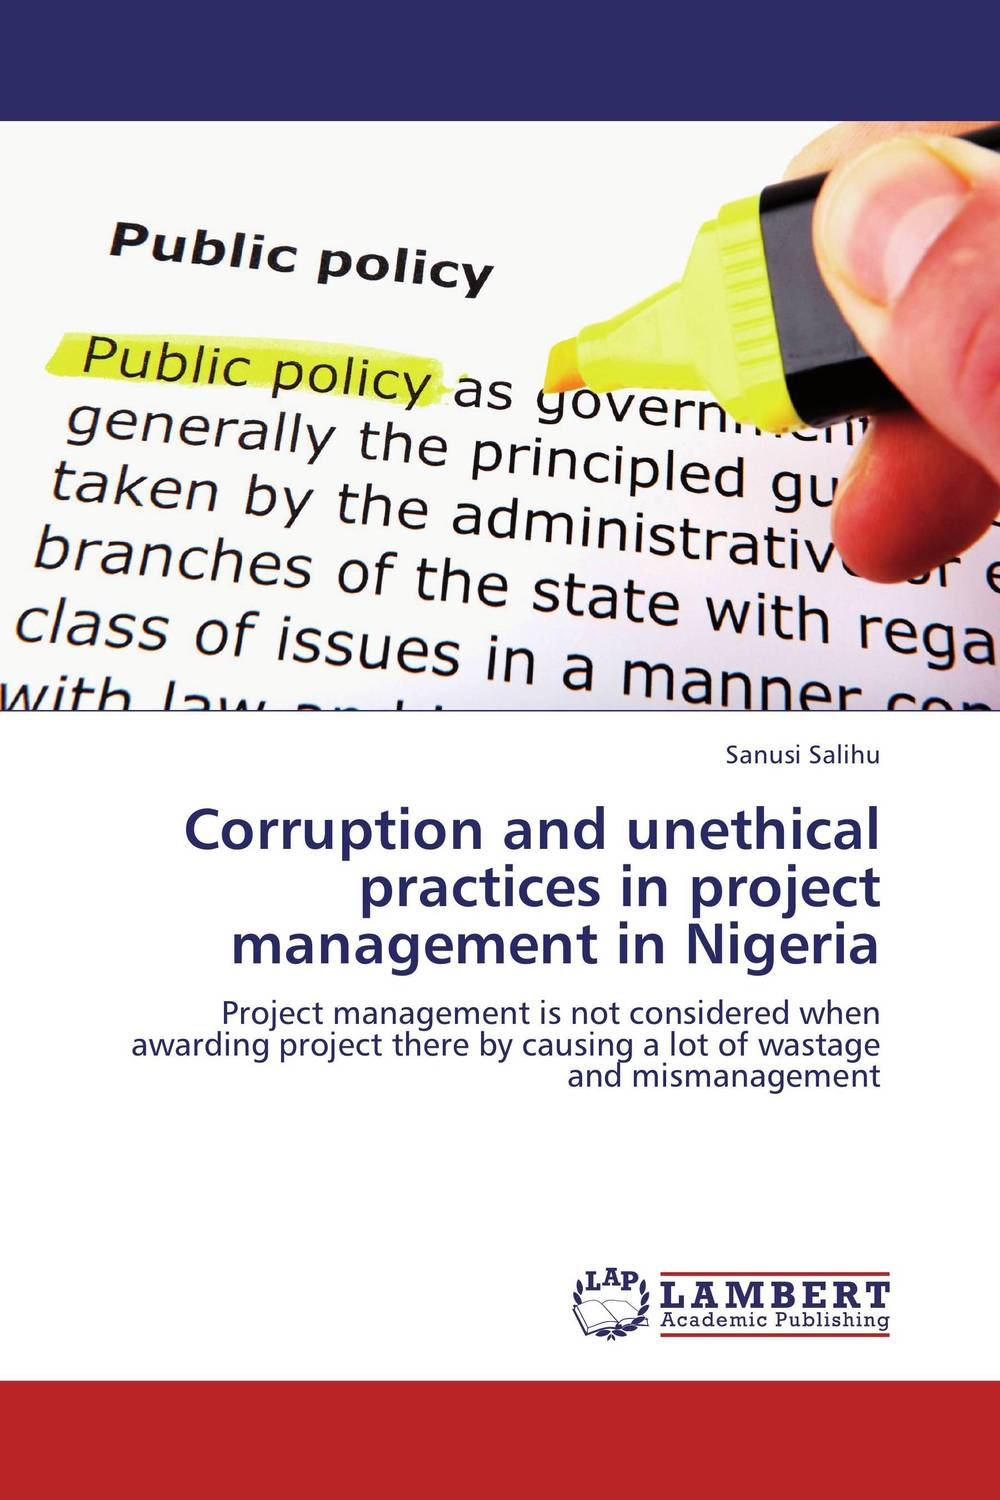 купить Corruption and unethical practices in project management in Nigeria недорого